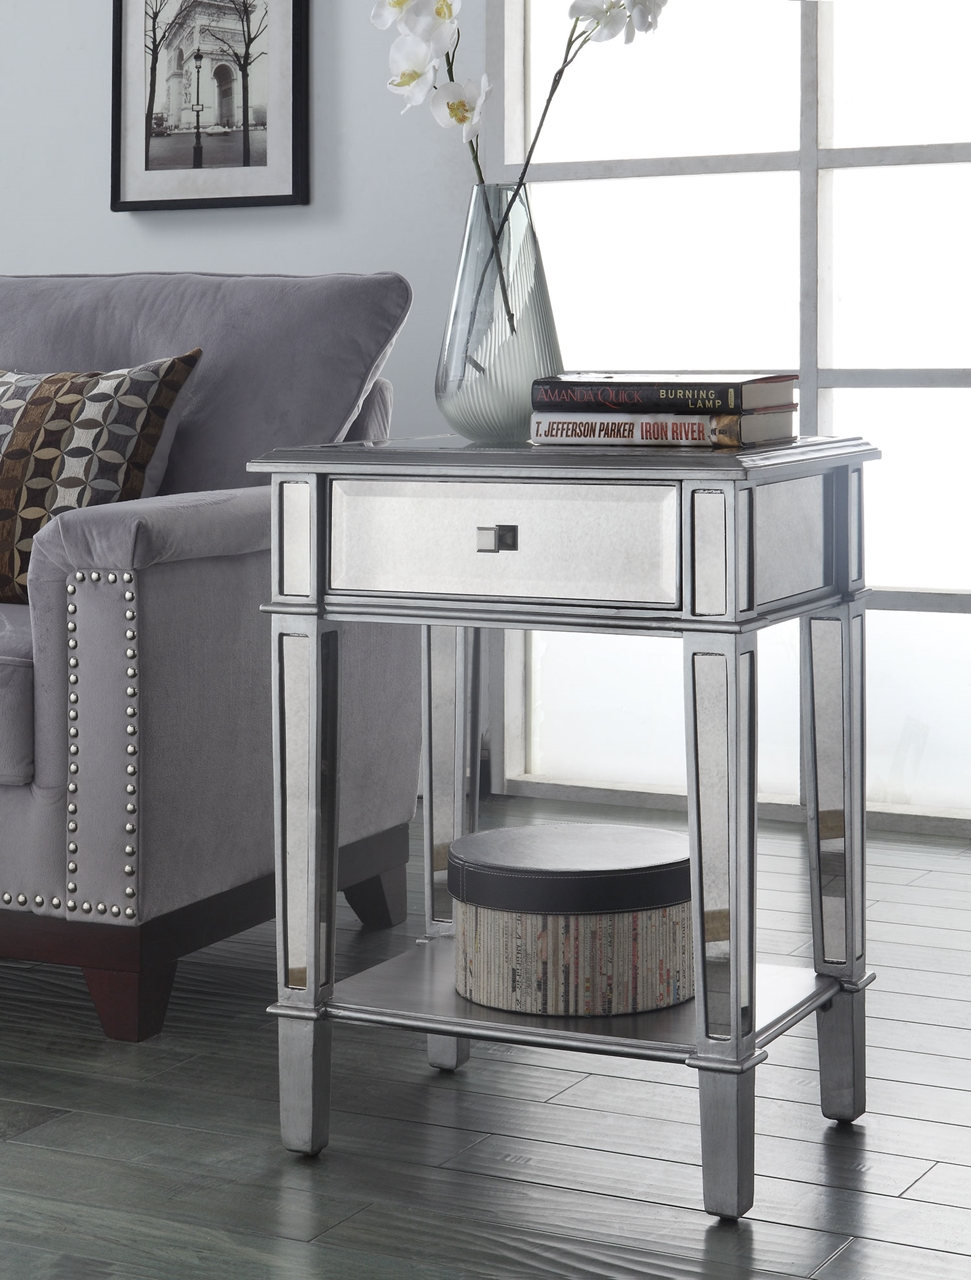 painted silver color small mirrored accent table with furniture drawer and shelves plus flower stand living room spaces ideas end mid century modern dining electric humidor marble